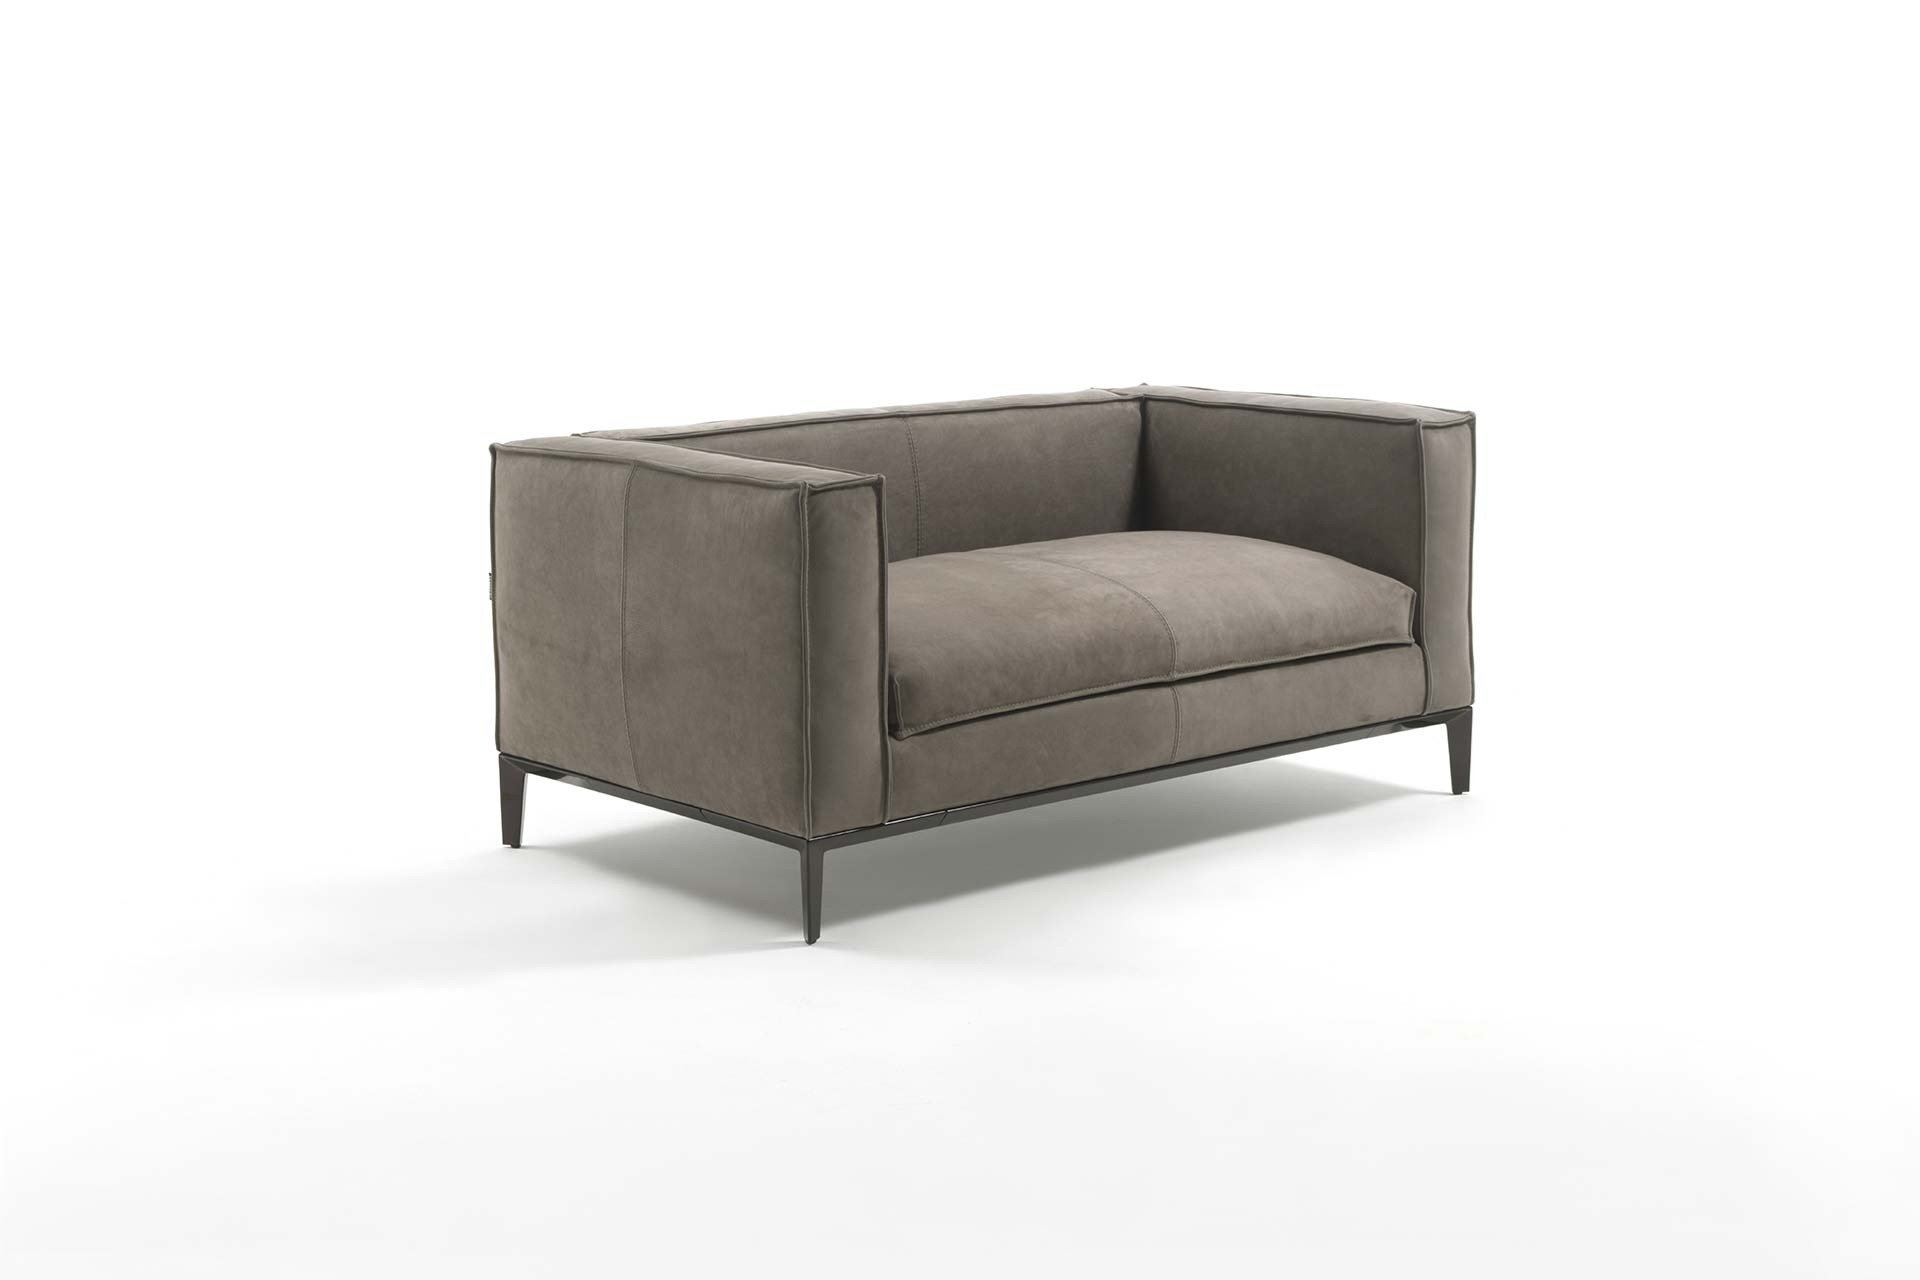 Taylor junior leather small sofa by frigerio poltrone e divani - Poltrone e sofa paris ...